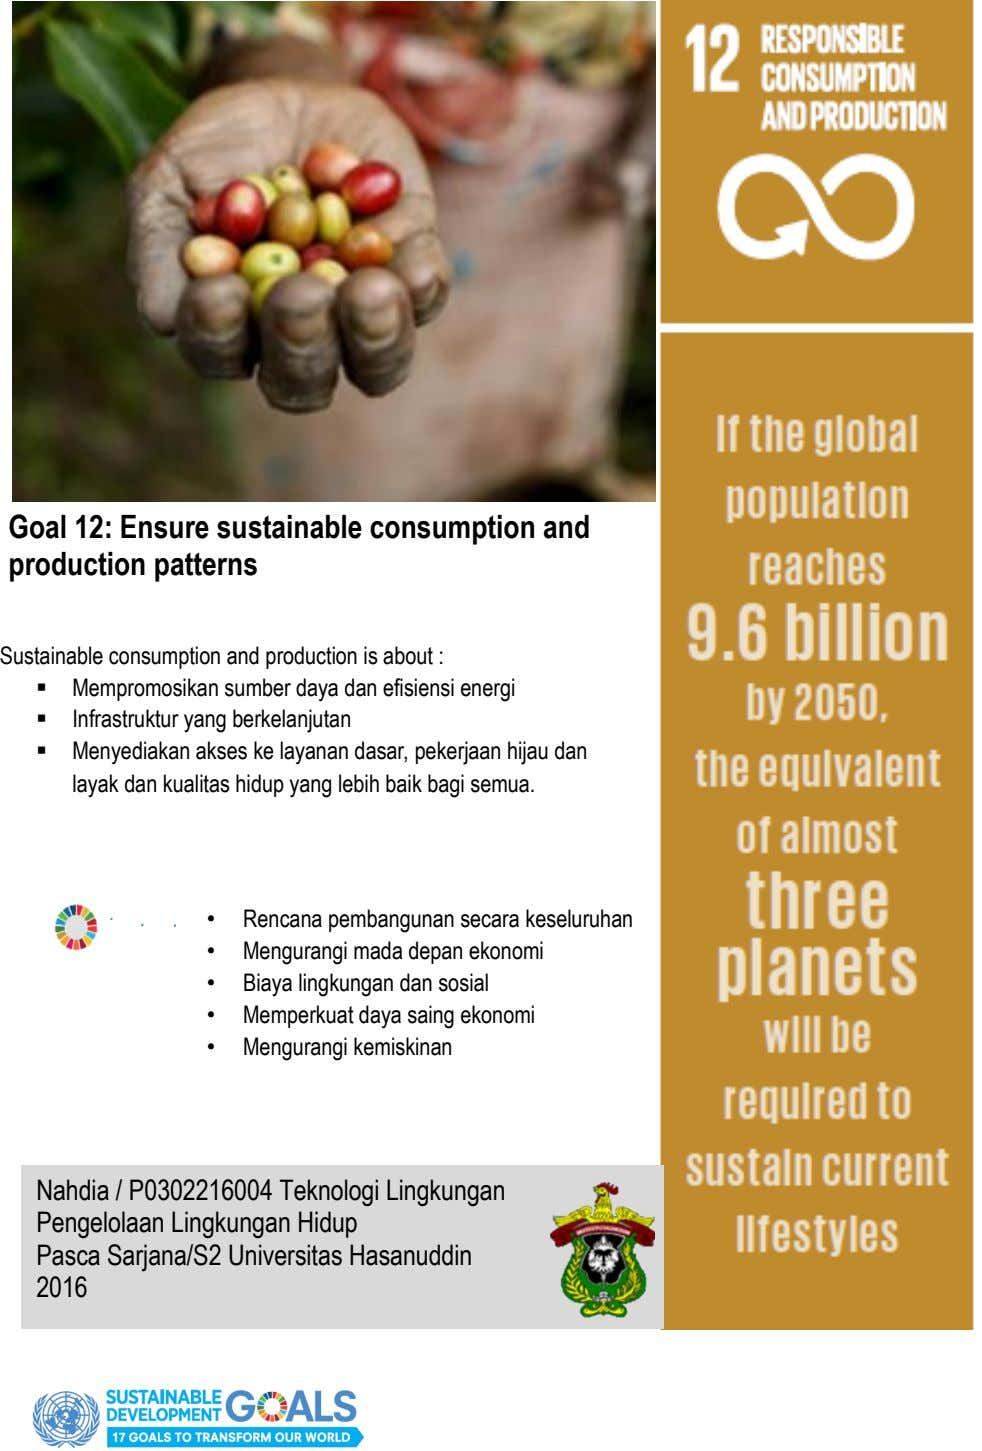 Goal 12: Ensure sustainable consumption and production patterns Sustainable consumption and production is about : 